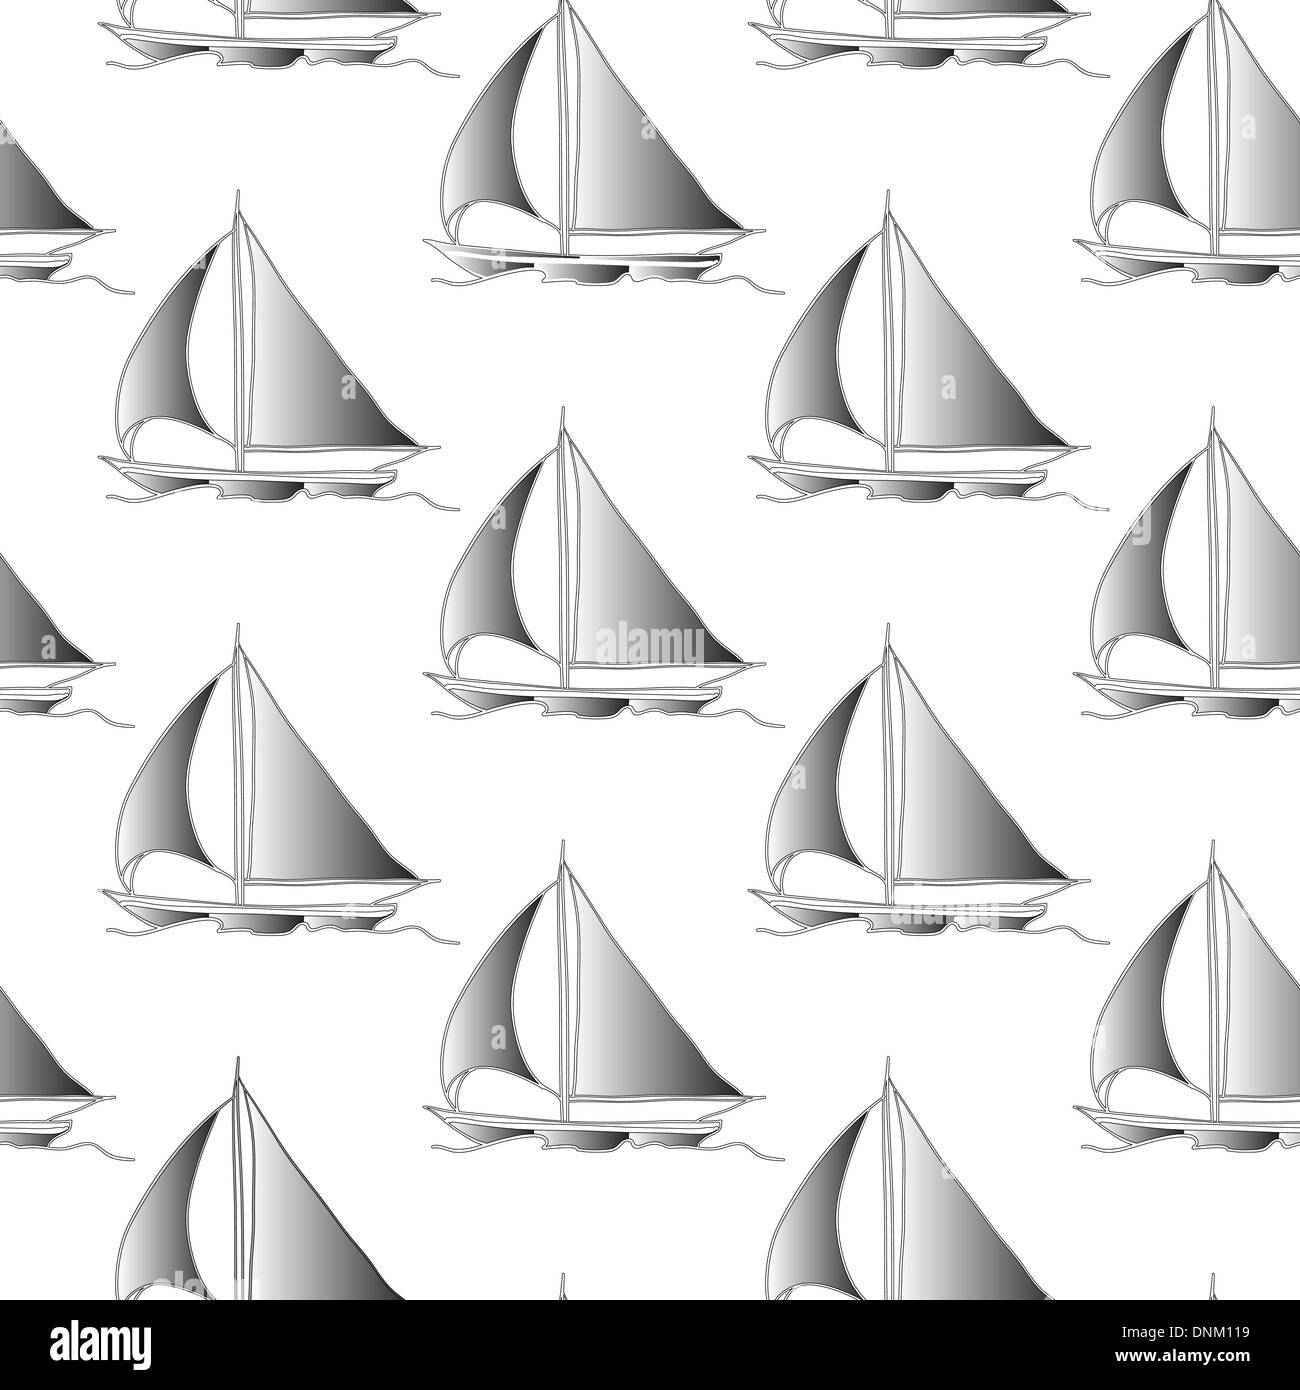 seamless wallpaper with a sailboat on the ocean waves - Stock Image